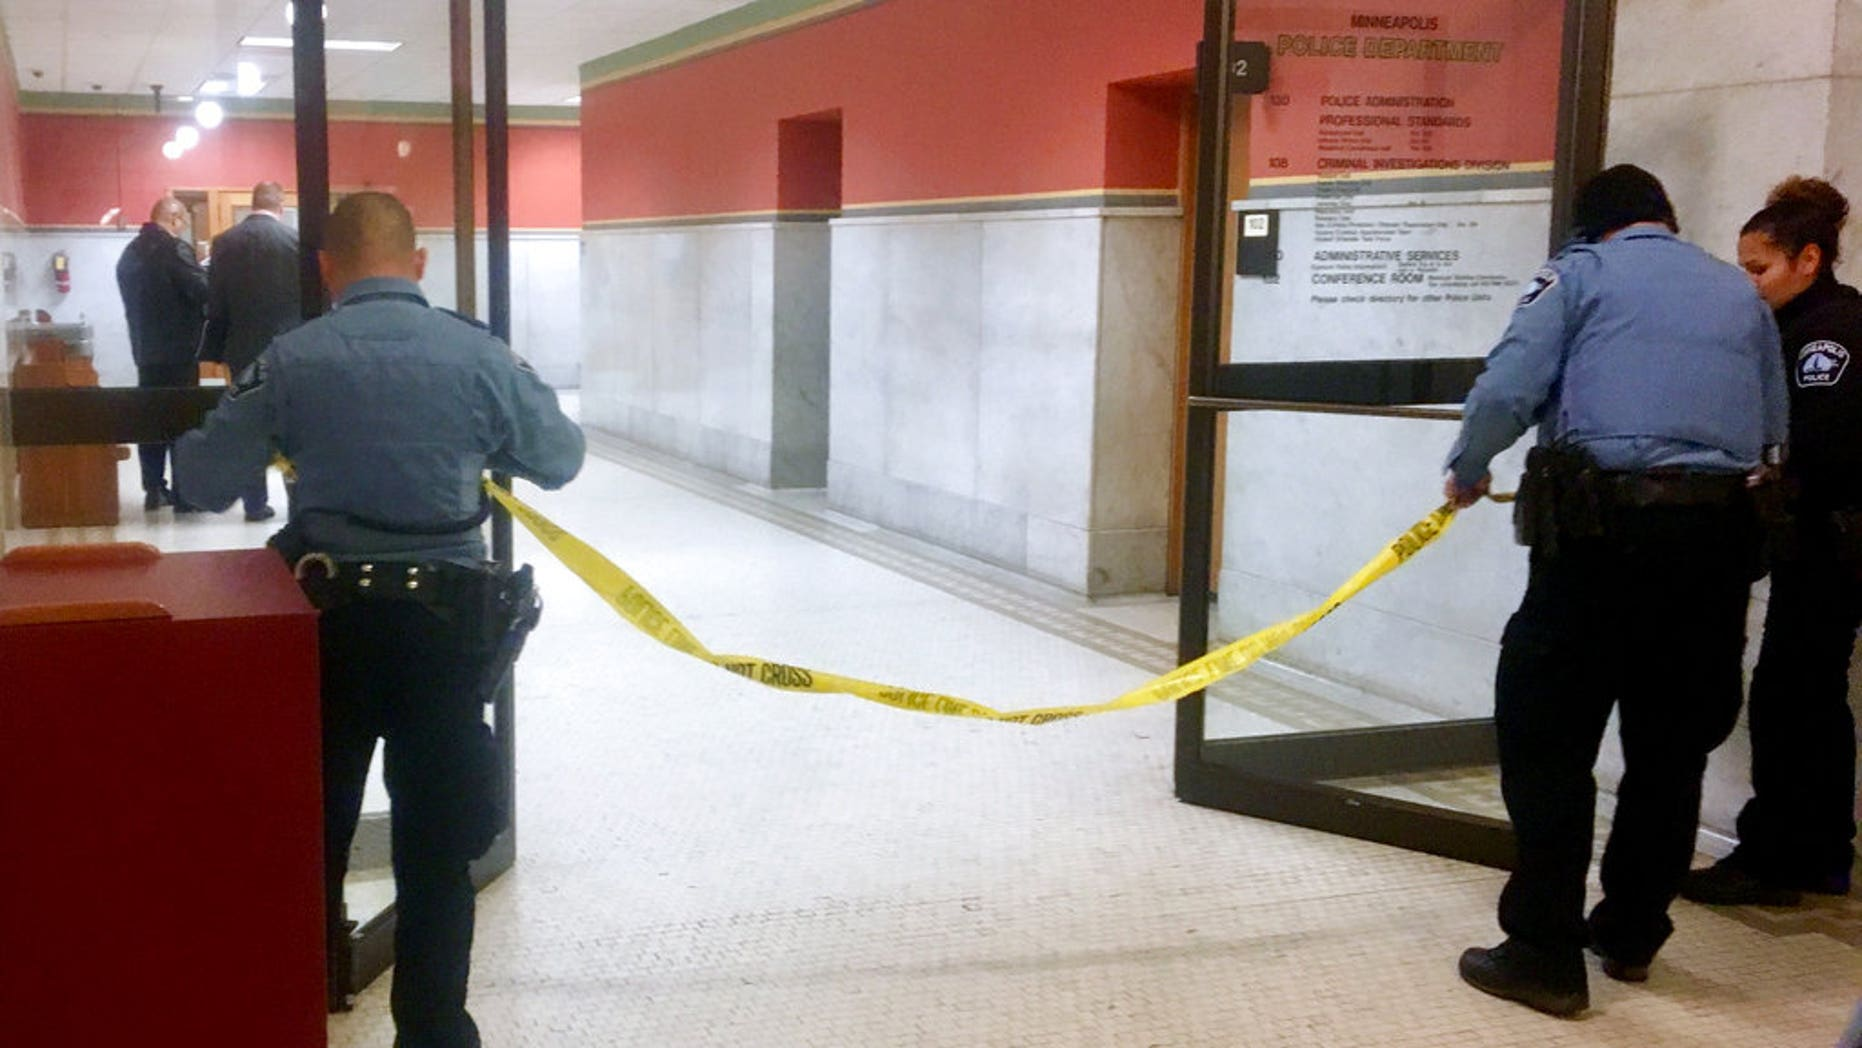 Police set up crime scene tape outside a Minneapolis police room at Minneapolis City Hall on Monday, Dec. 18, 2017. Minneapolis police say their officers have been involved in a shooting inside the department's investigative unit at City Hall. (AP Photo/Jeff Baenen)